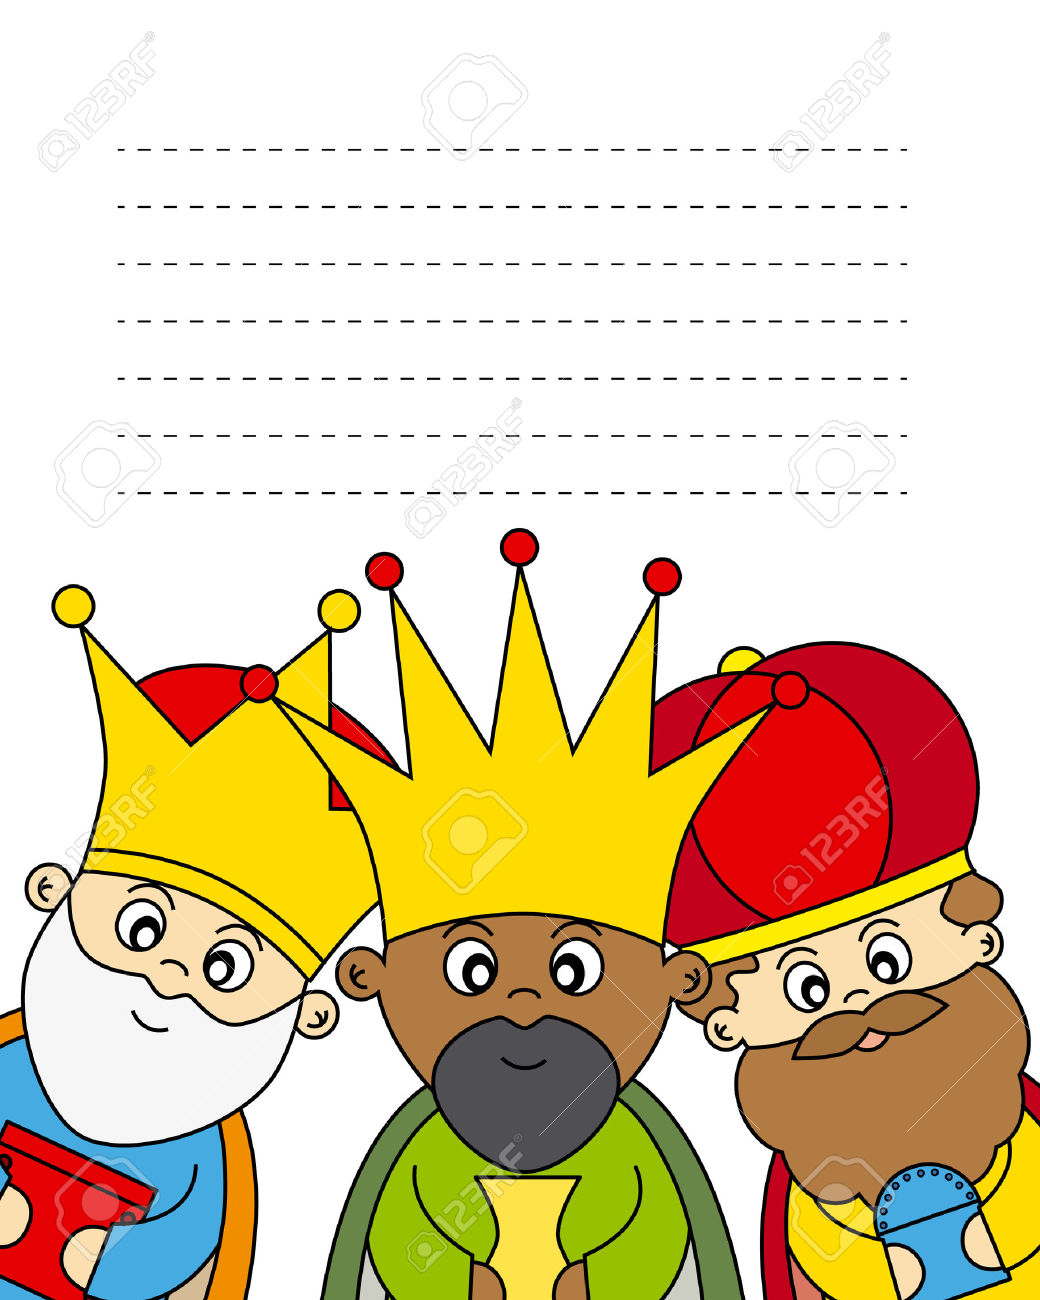 clipart reyes magos #3